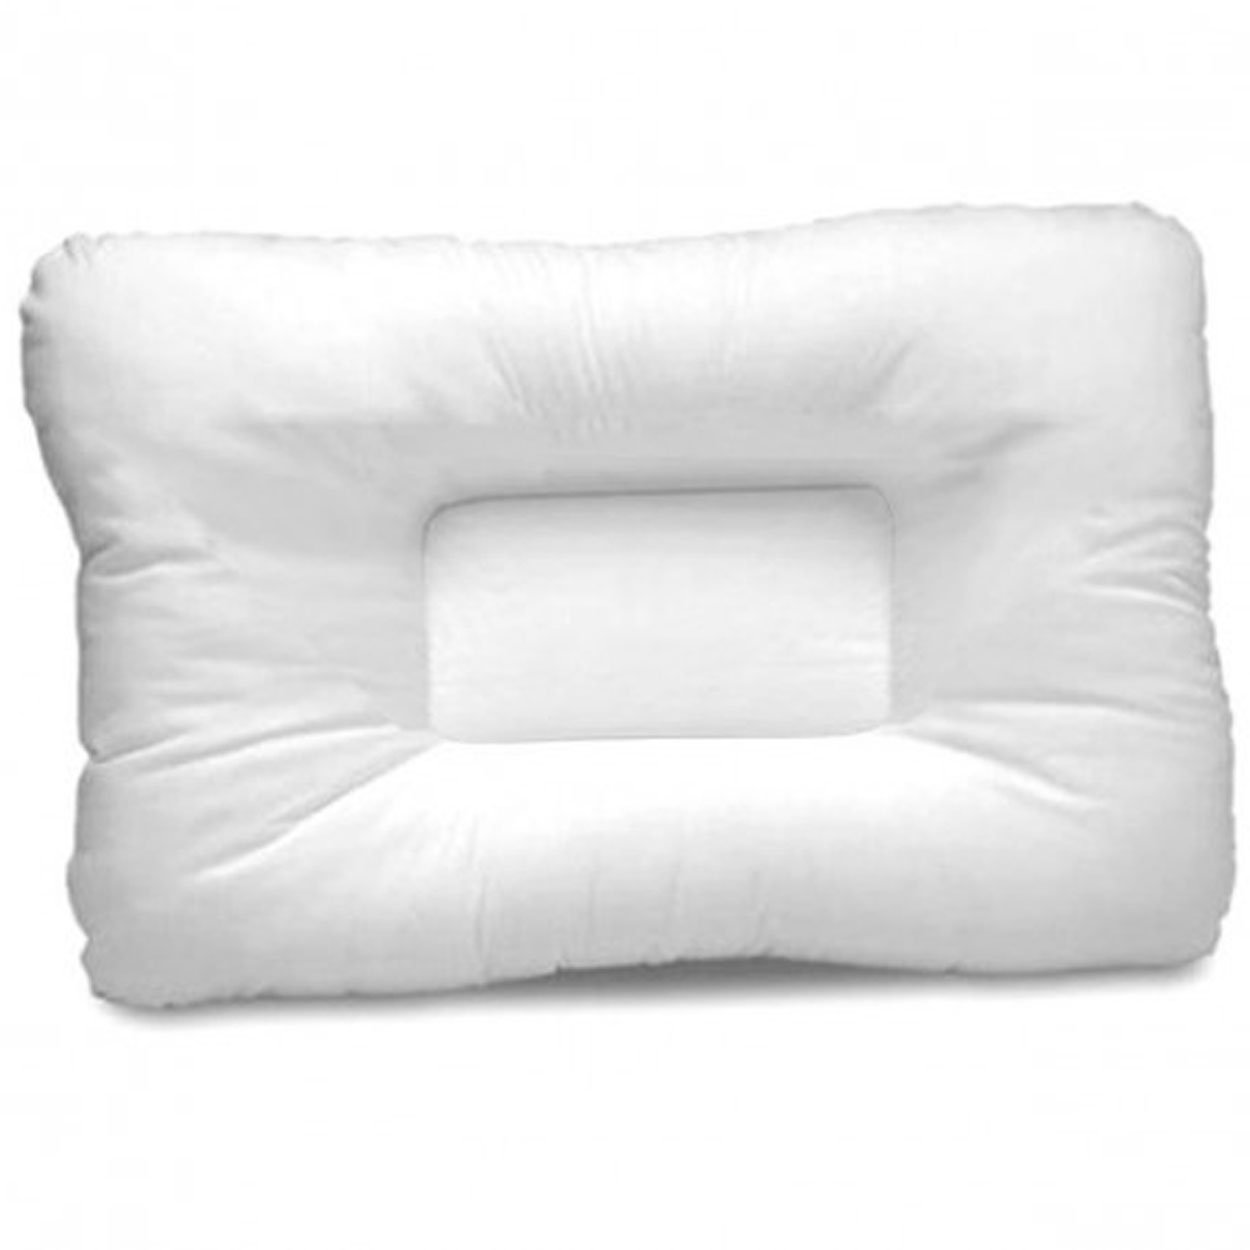 Anti Snore Orthopedice Pillow Stop Snoring unbranded